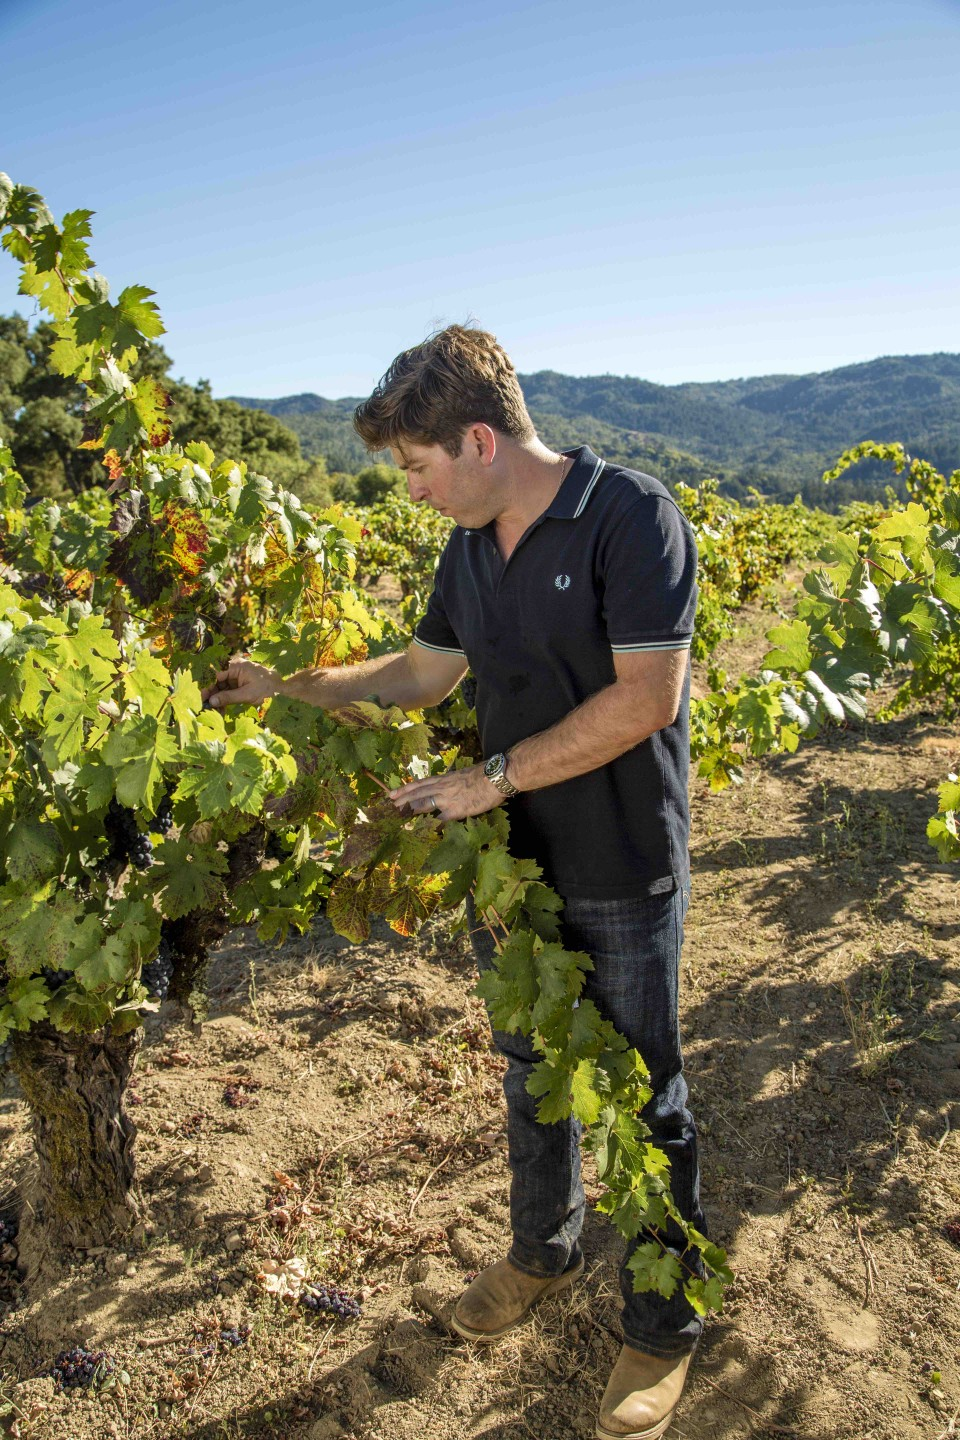 Winemaker Dave Phinney produces blends using Grenache sourced from hillside vineyards in Napa Valley, Sonoma County and Mendocino.